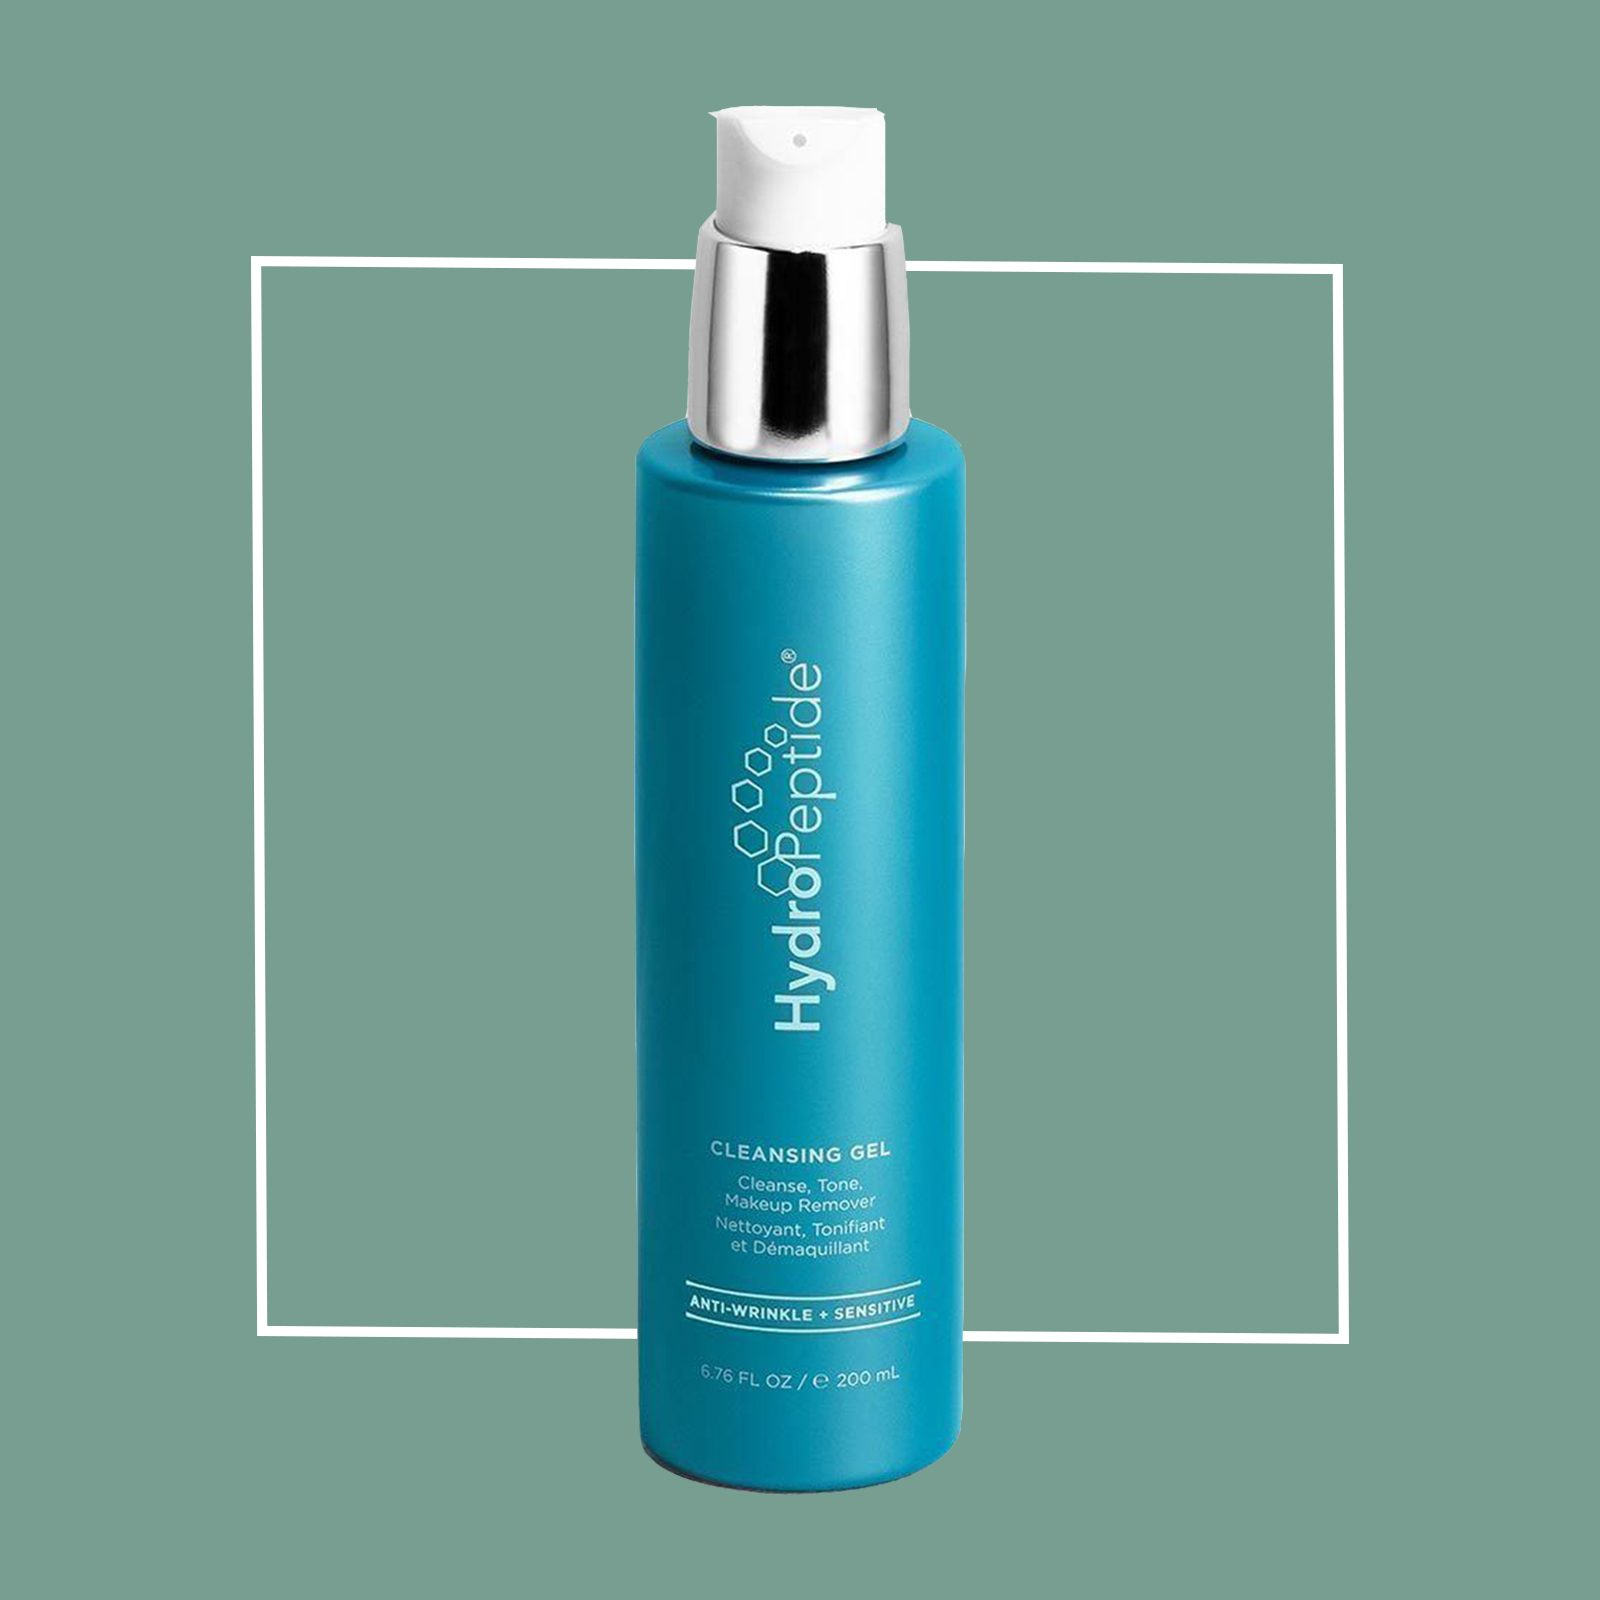 hydropeptide face cleanser for people in their 50s and up